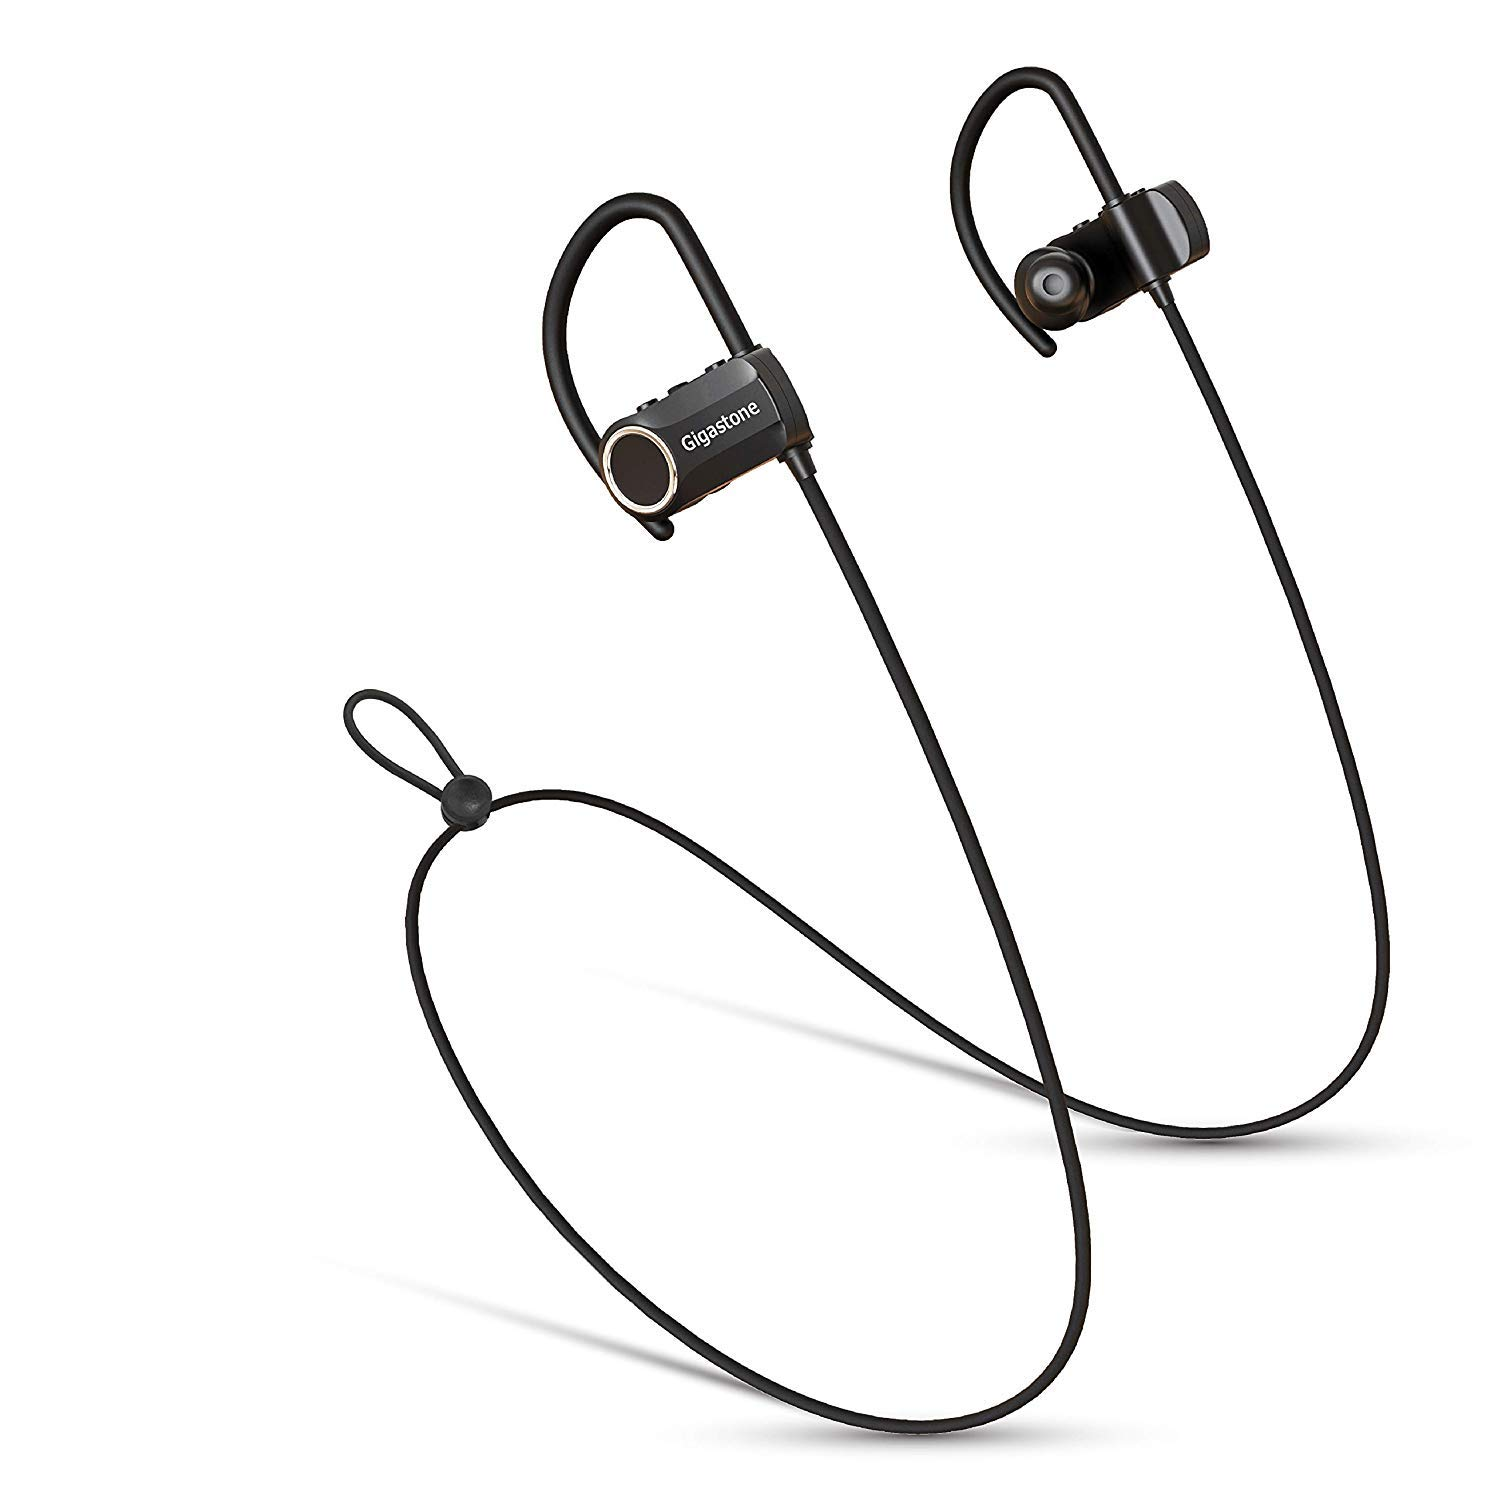 Gigastone Qualcomm CSR Wireless Sports Bluetooth Headphones, Super Long Hour Model, 12 Hour Playtime, HiFi Stereo Rich Bass IPX5 Water Resist Sweatproof Headsets Noise Cancelling Earbuds Fitness Gym